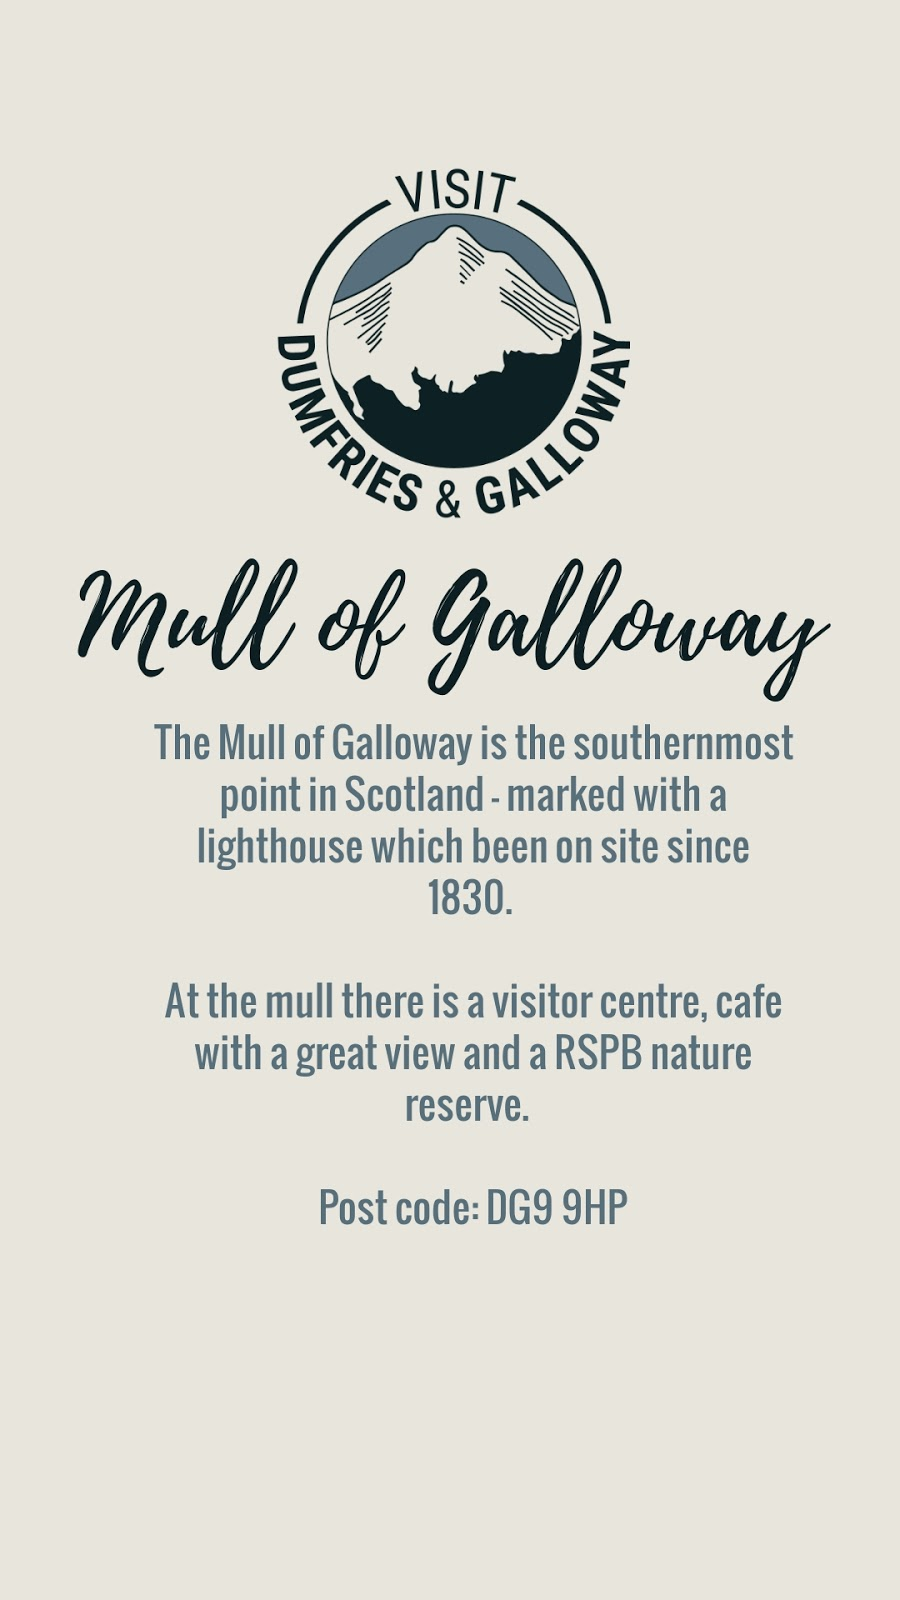 mull of galloway visit dumfries and galloway stranraer lighthouse